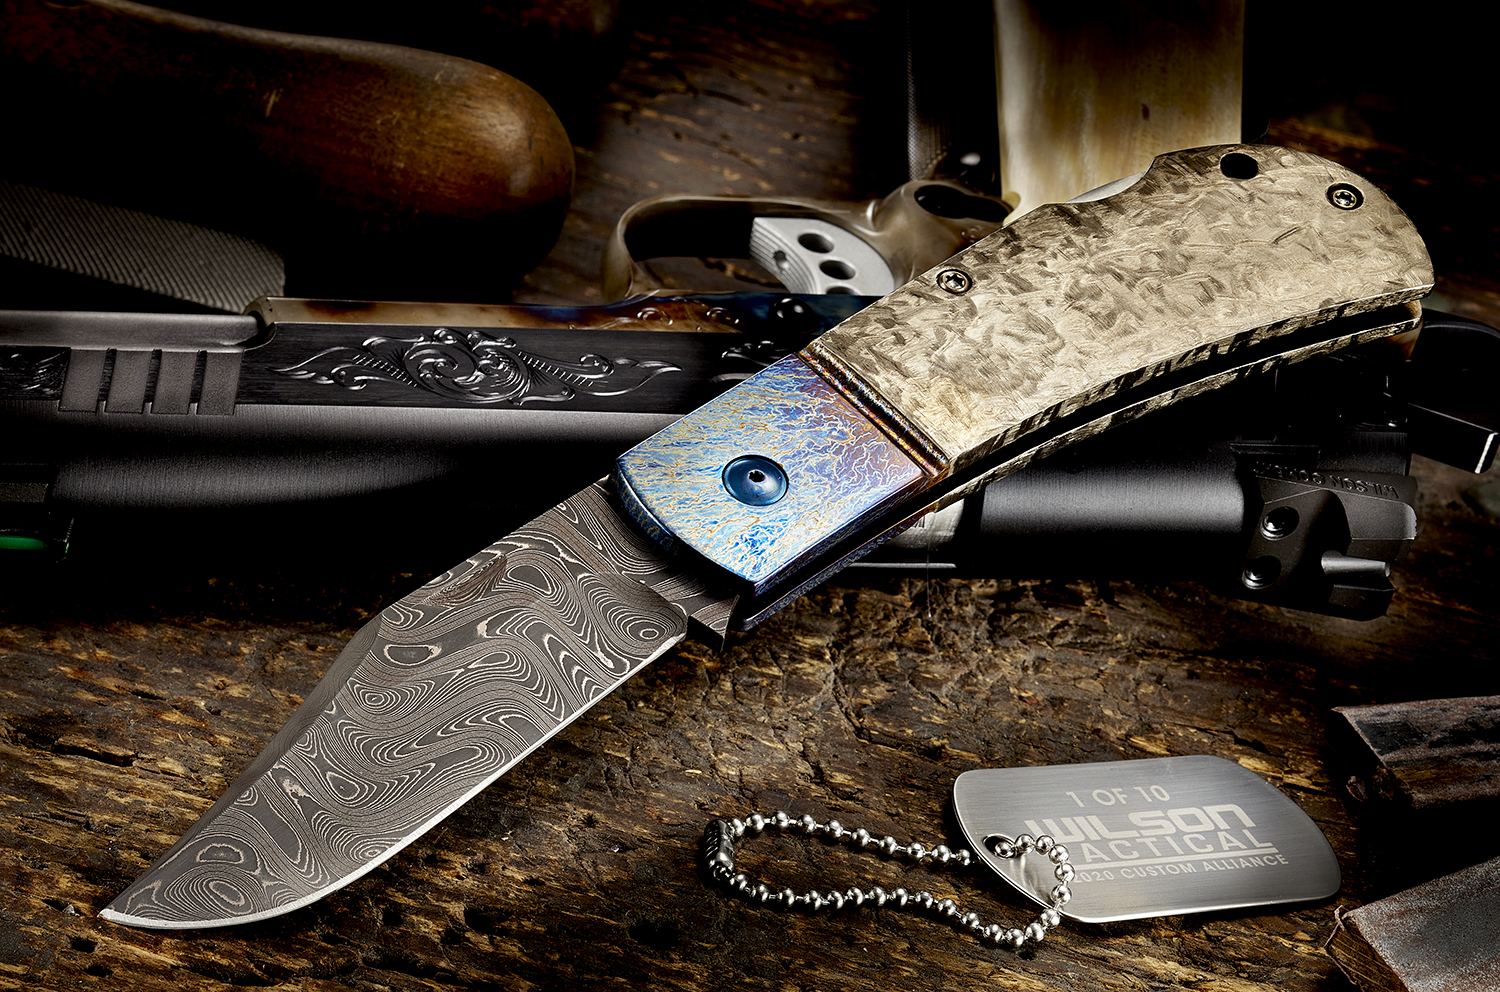 WILSON COMBAT SHOWS OFF THE CUSTOM ALLIANCE #50 DAMASCUS COMBAT CLIP KNIFE BY MICHAEL VAGNINO